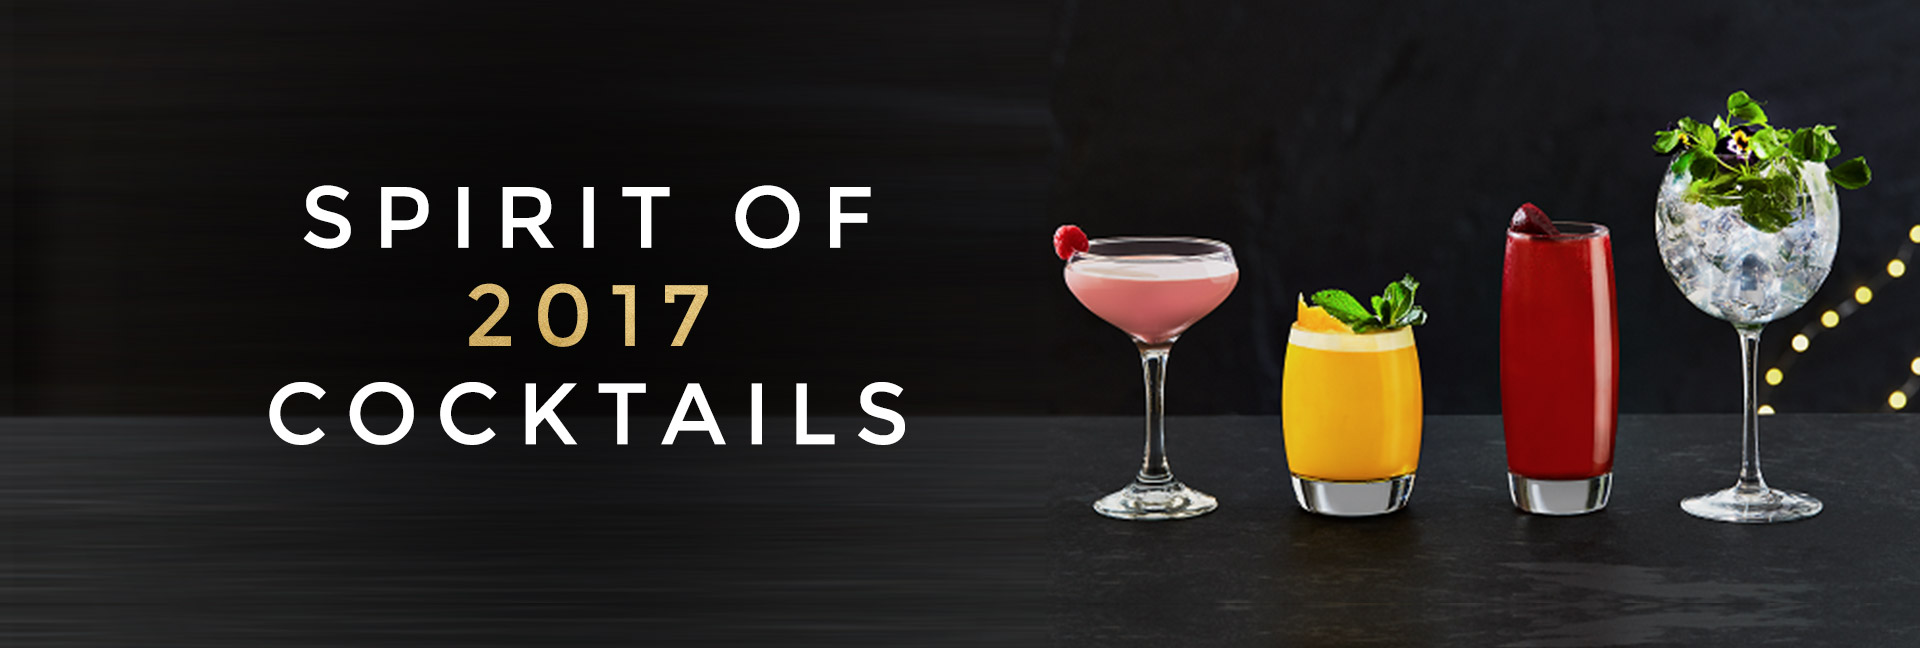 Spirit of 2017 cocktails at All Bar One Holborn